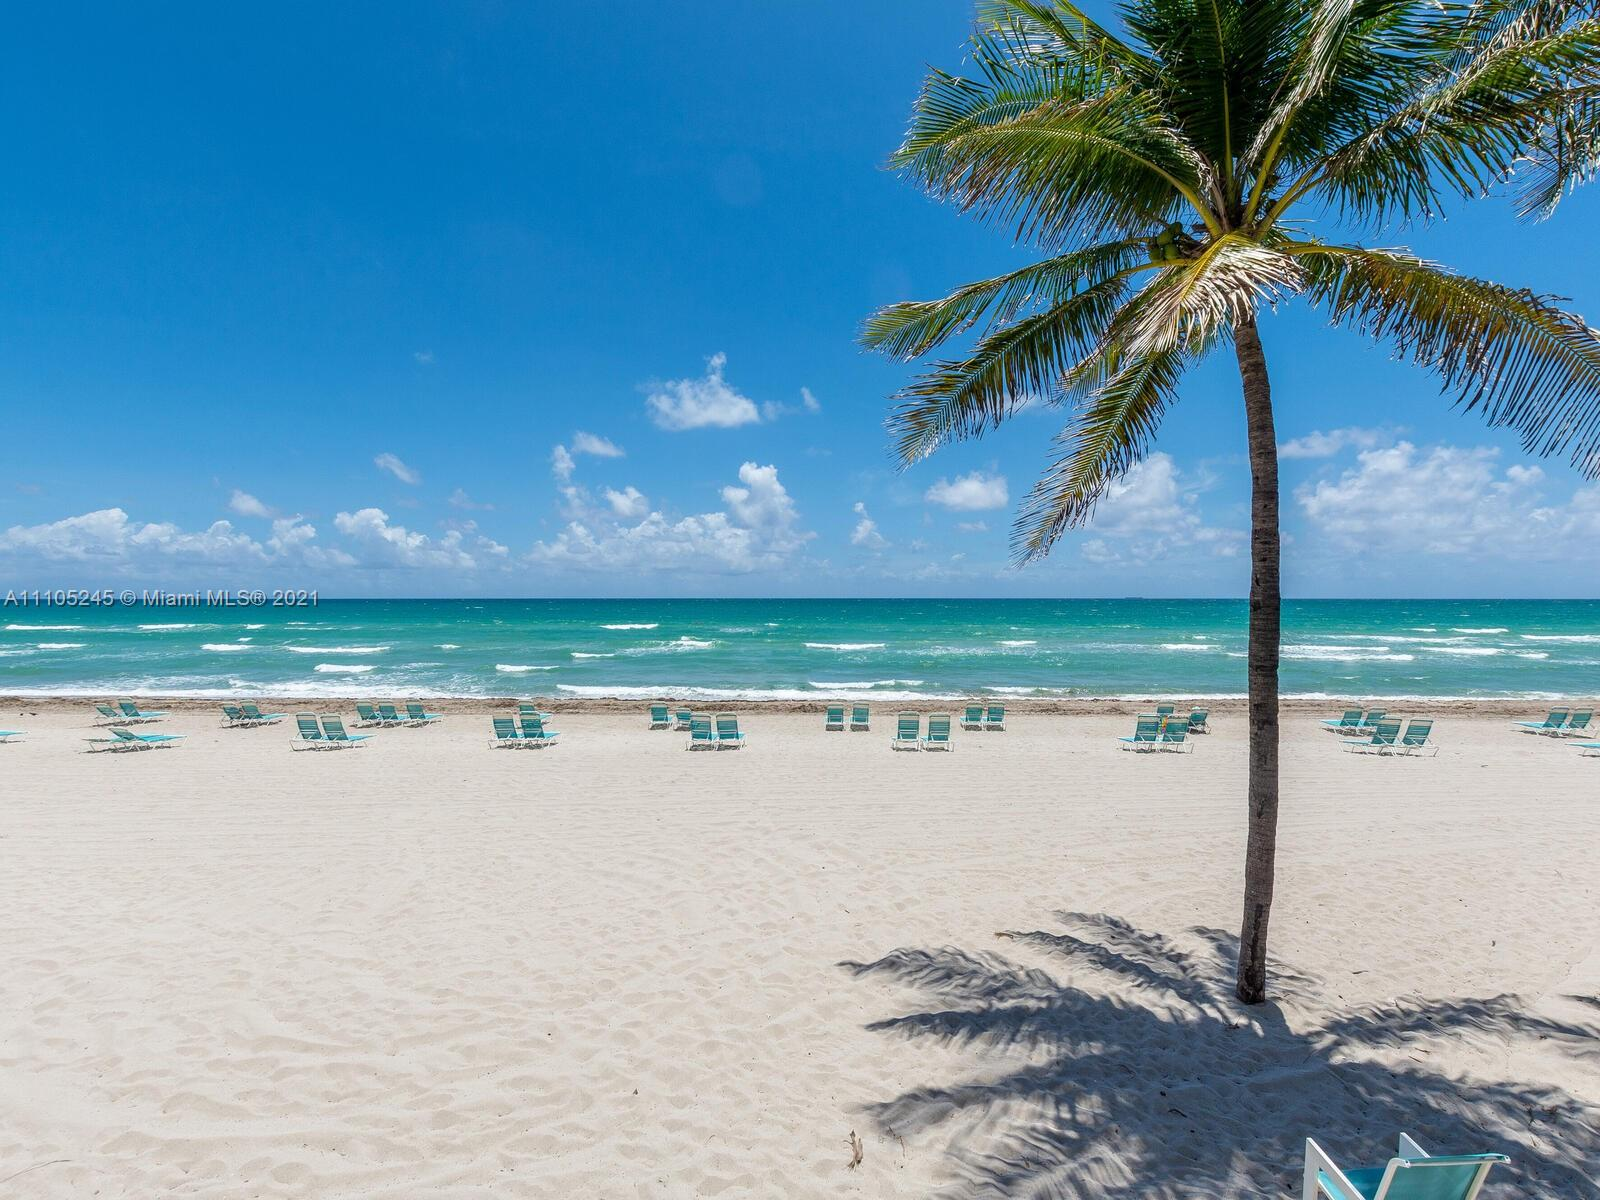 The Wave, 2501 S OCEAN DR Unit 808, Hollywood, Florida 33019